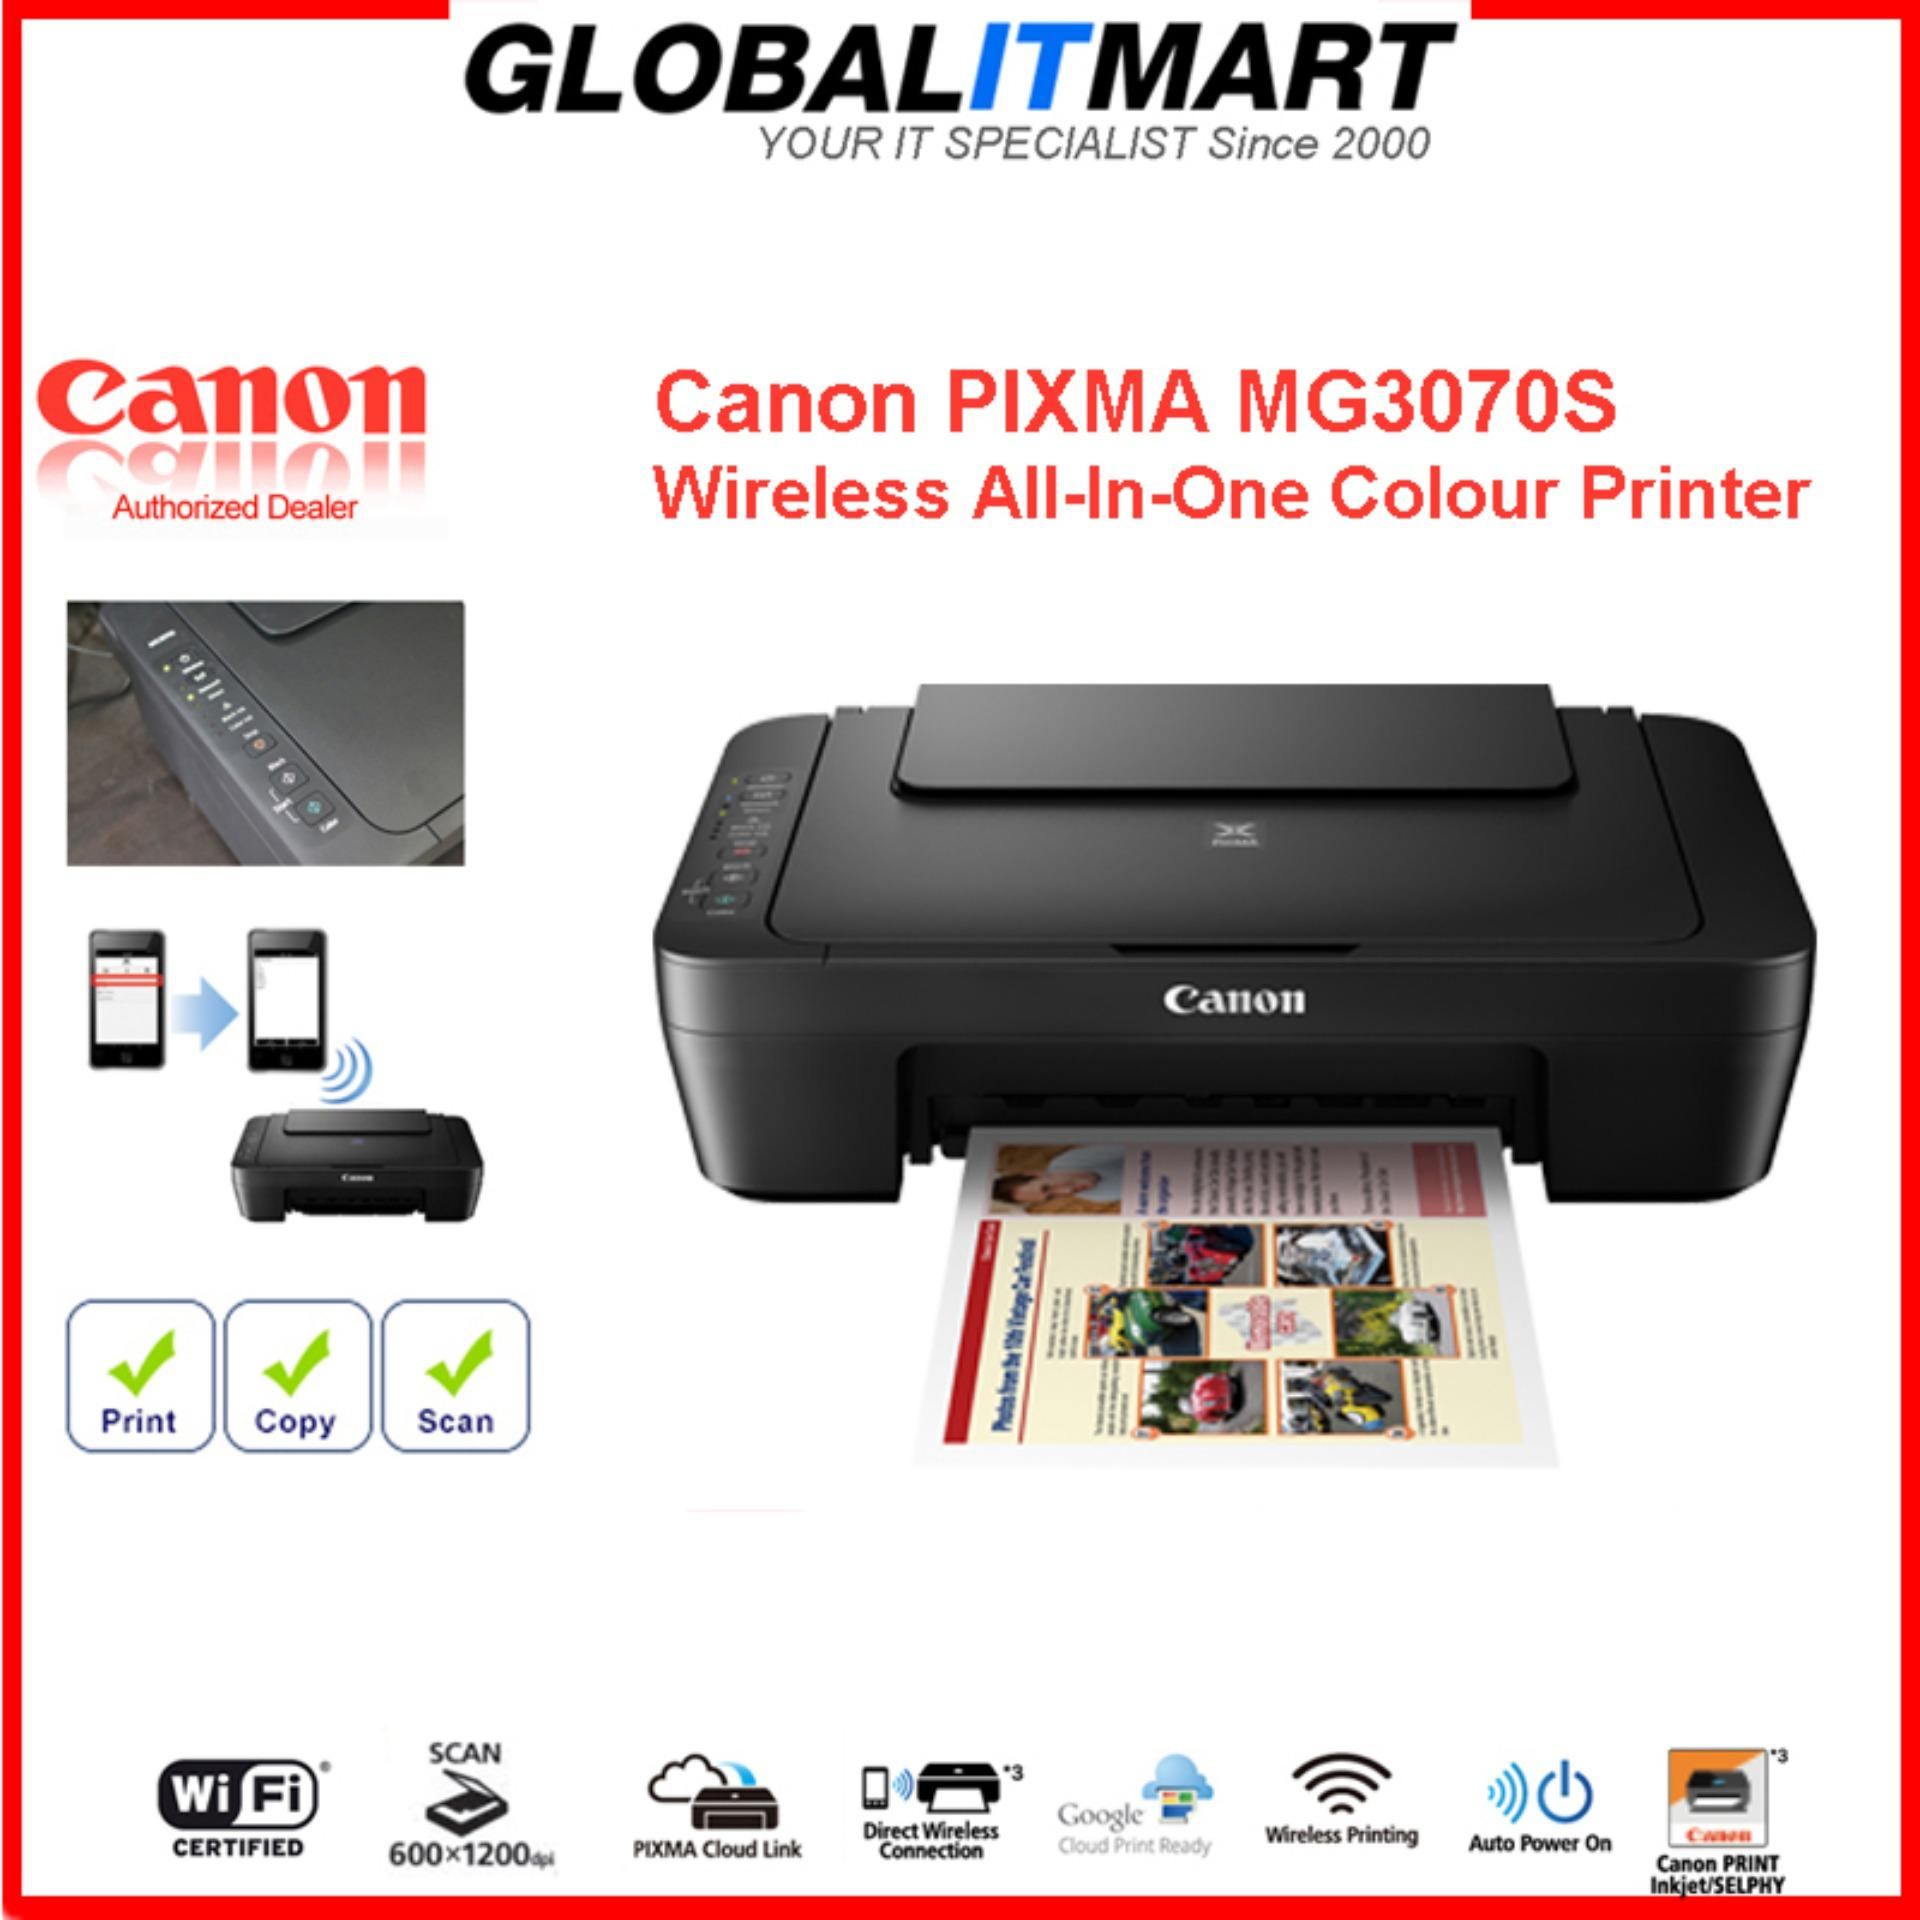 Canon PIXMA MG3070S *Free PG-745S Black Ink Worth $15 15 Till 25th Aug  2019* MG 3070S, 3070